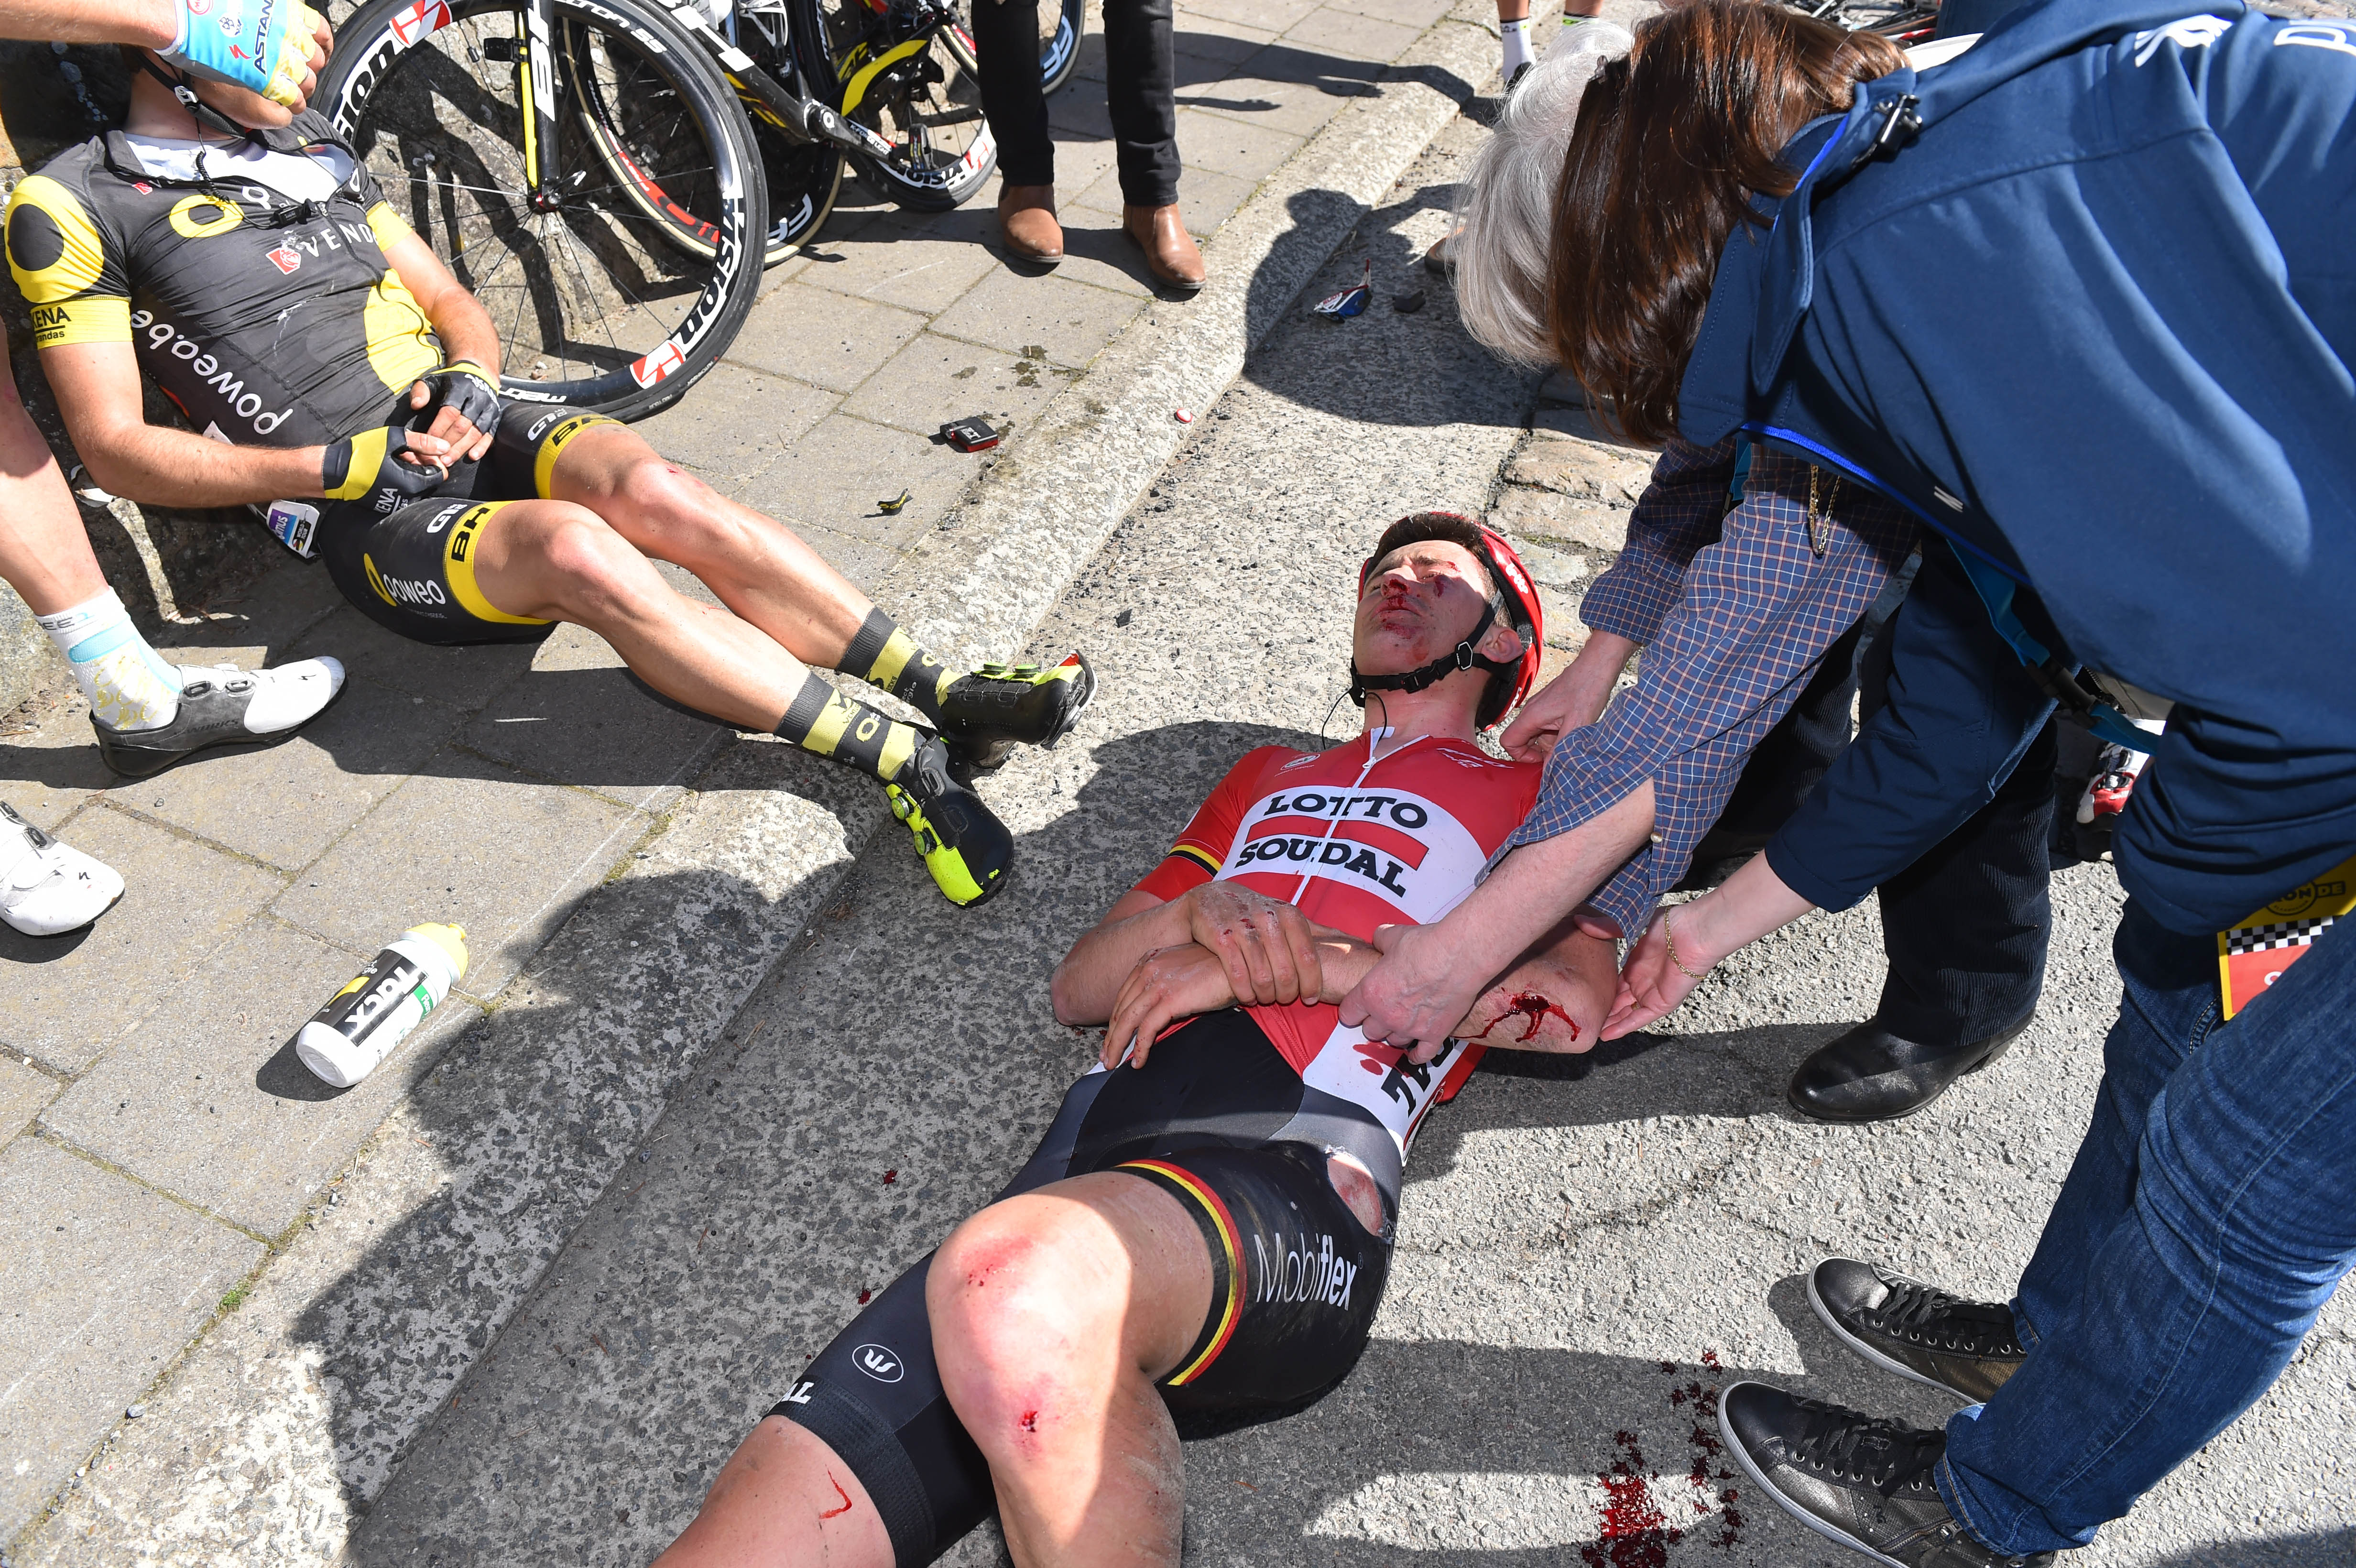 Crashes, like this one for Tiesj Benoot last year, are an ever-present danger at De Ronde.